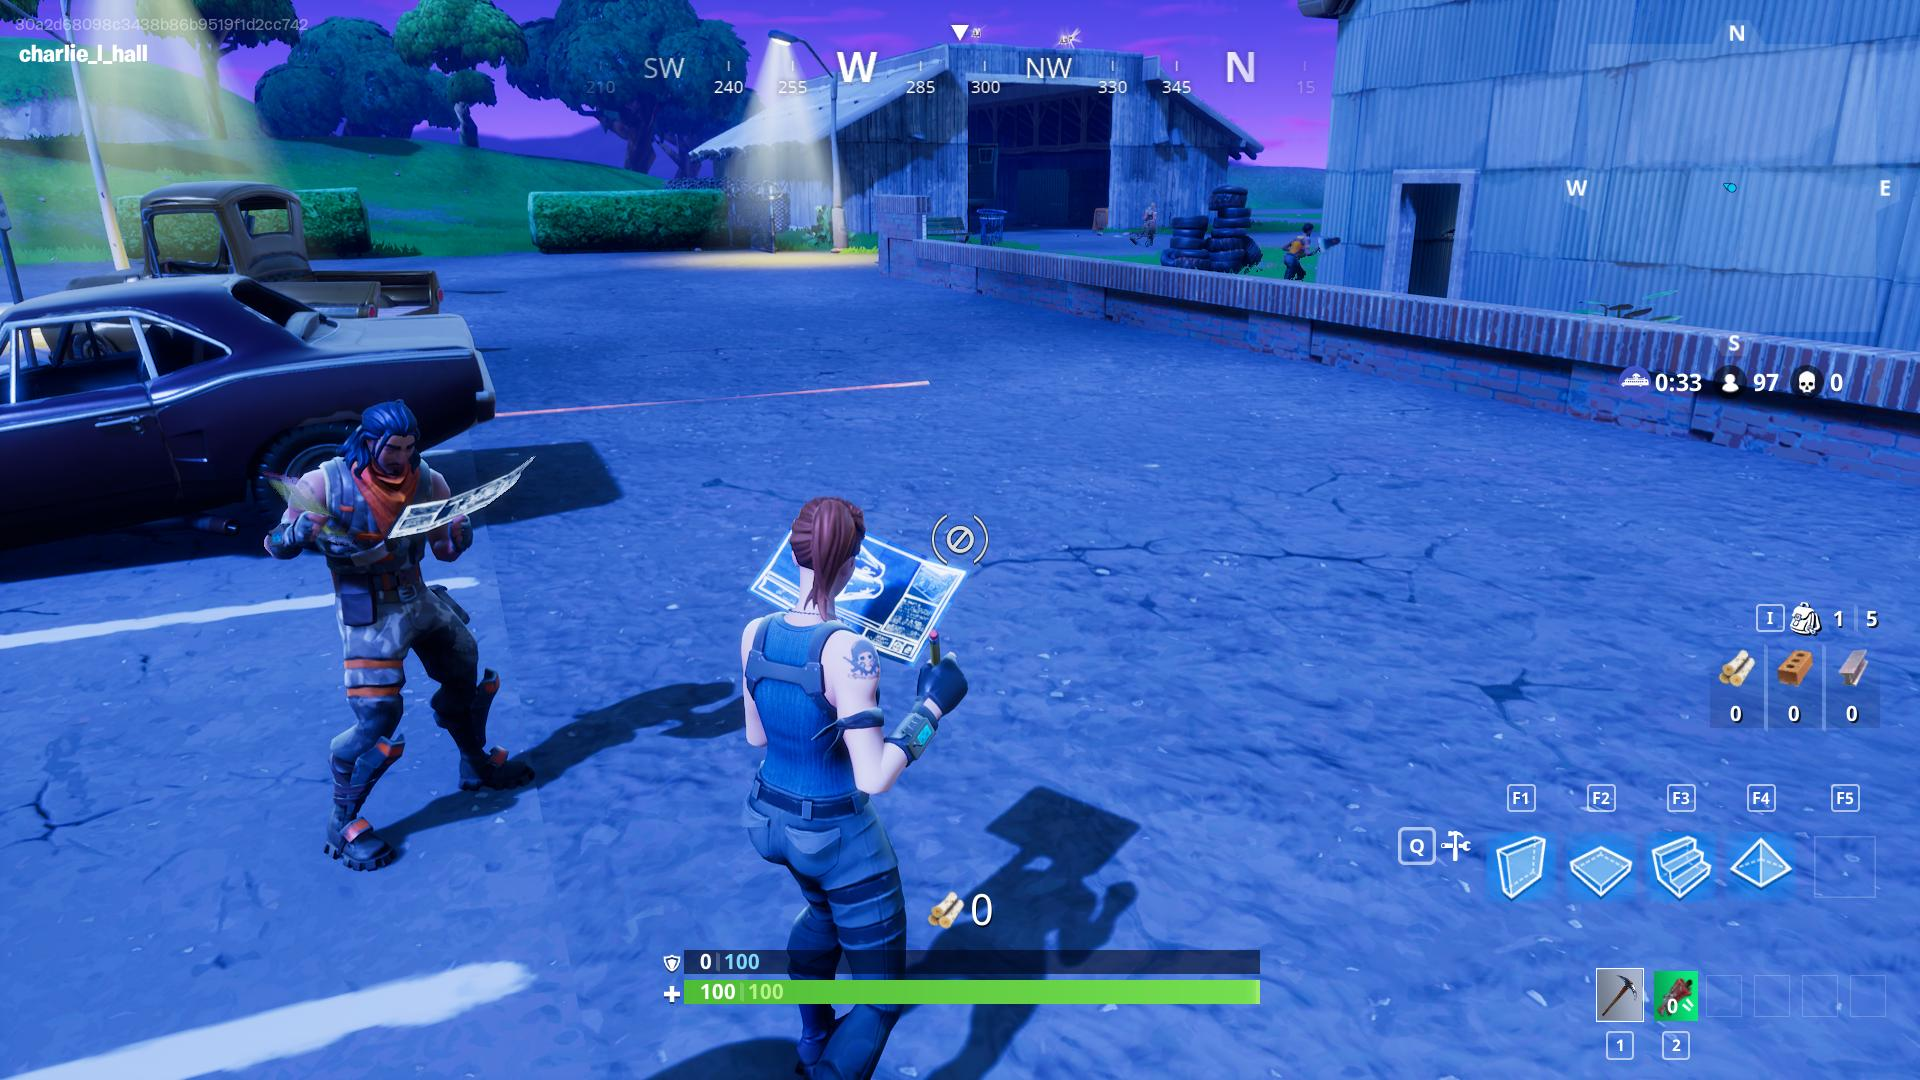 Fortnite Battle Royale Only Looks Cuddly On The Outside Polygon